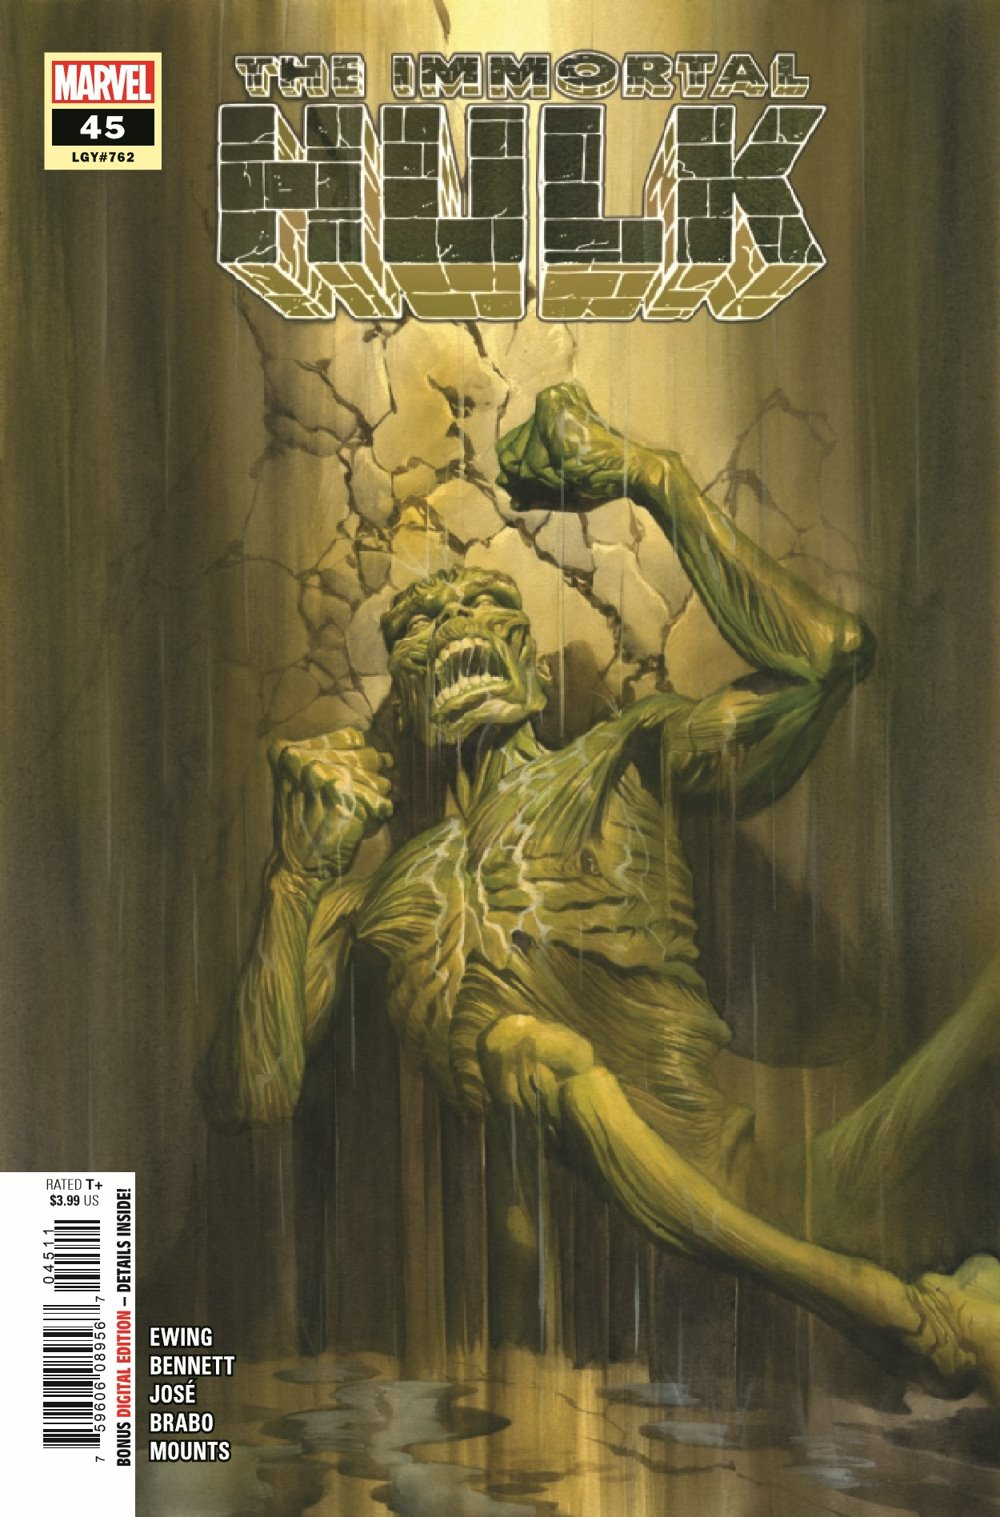 HULK2018045_Preview-1 ComicList Previews: THE IMMORTAL HULK #45